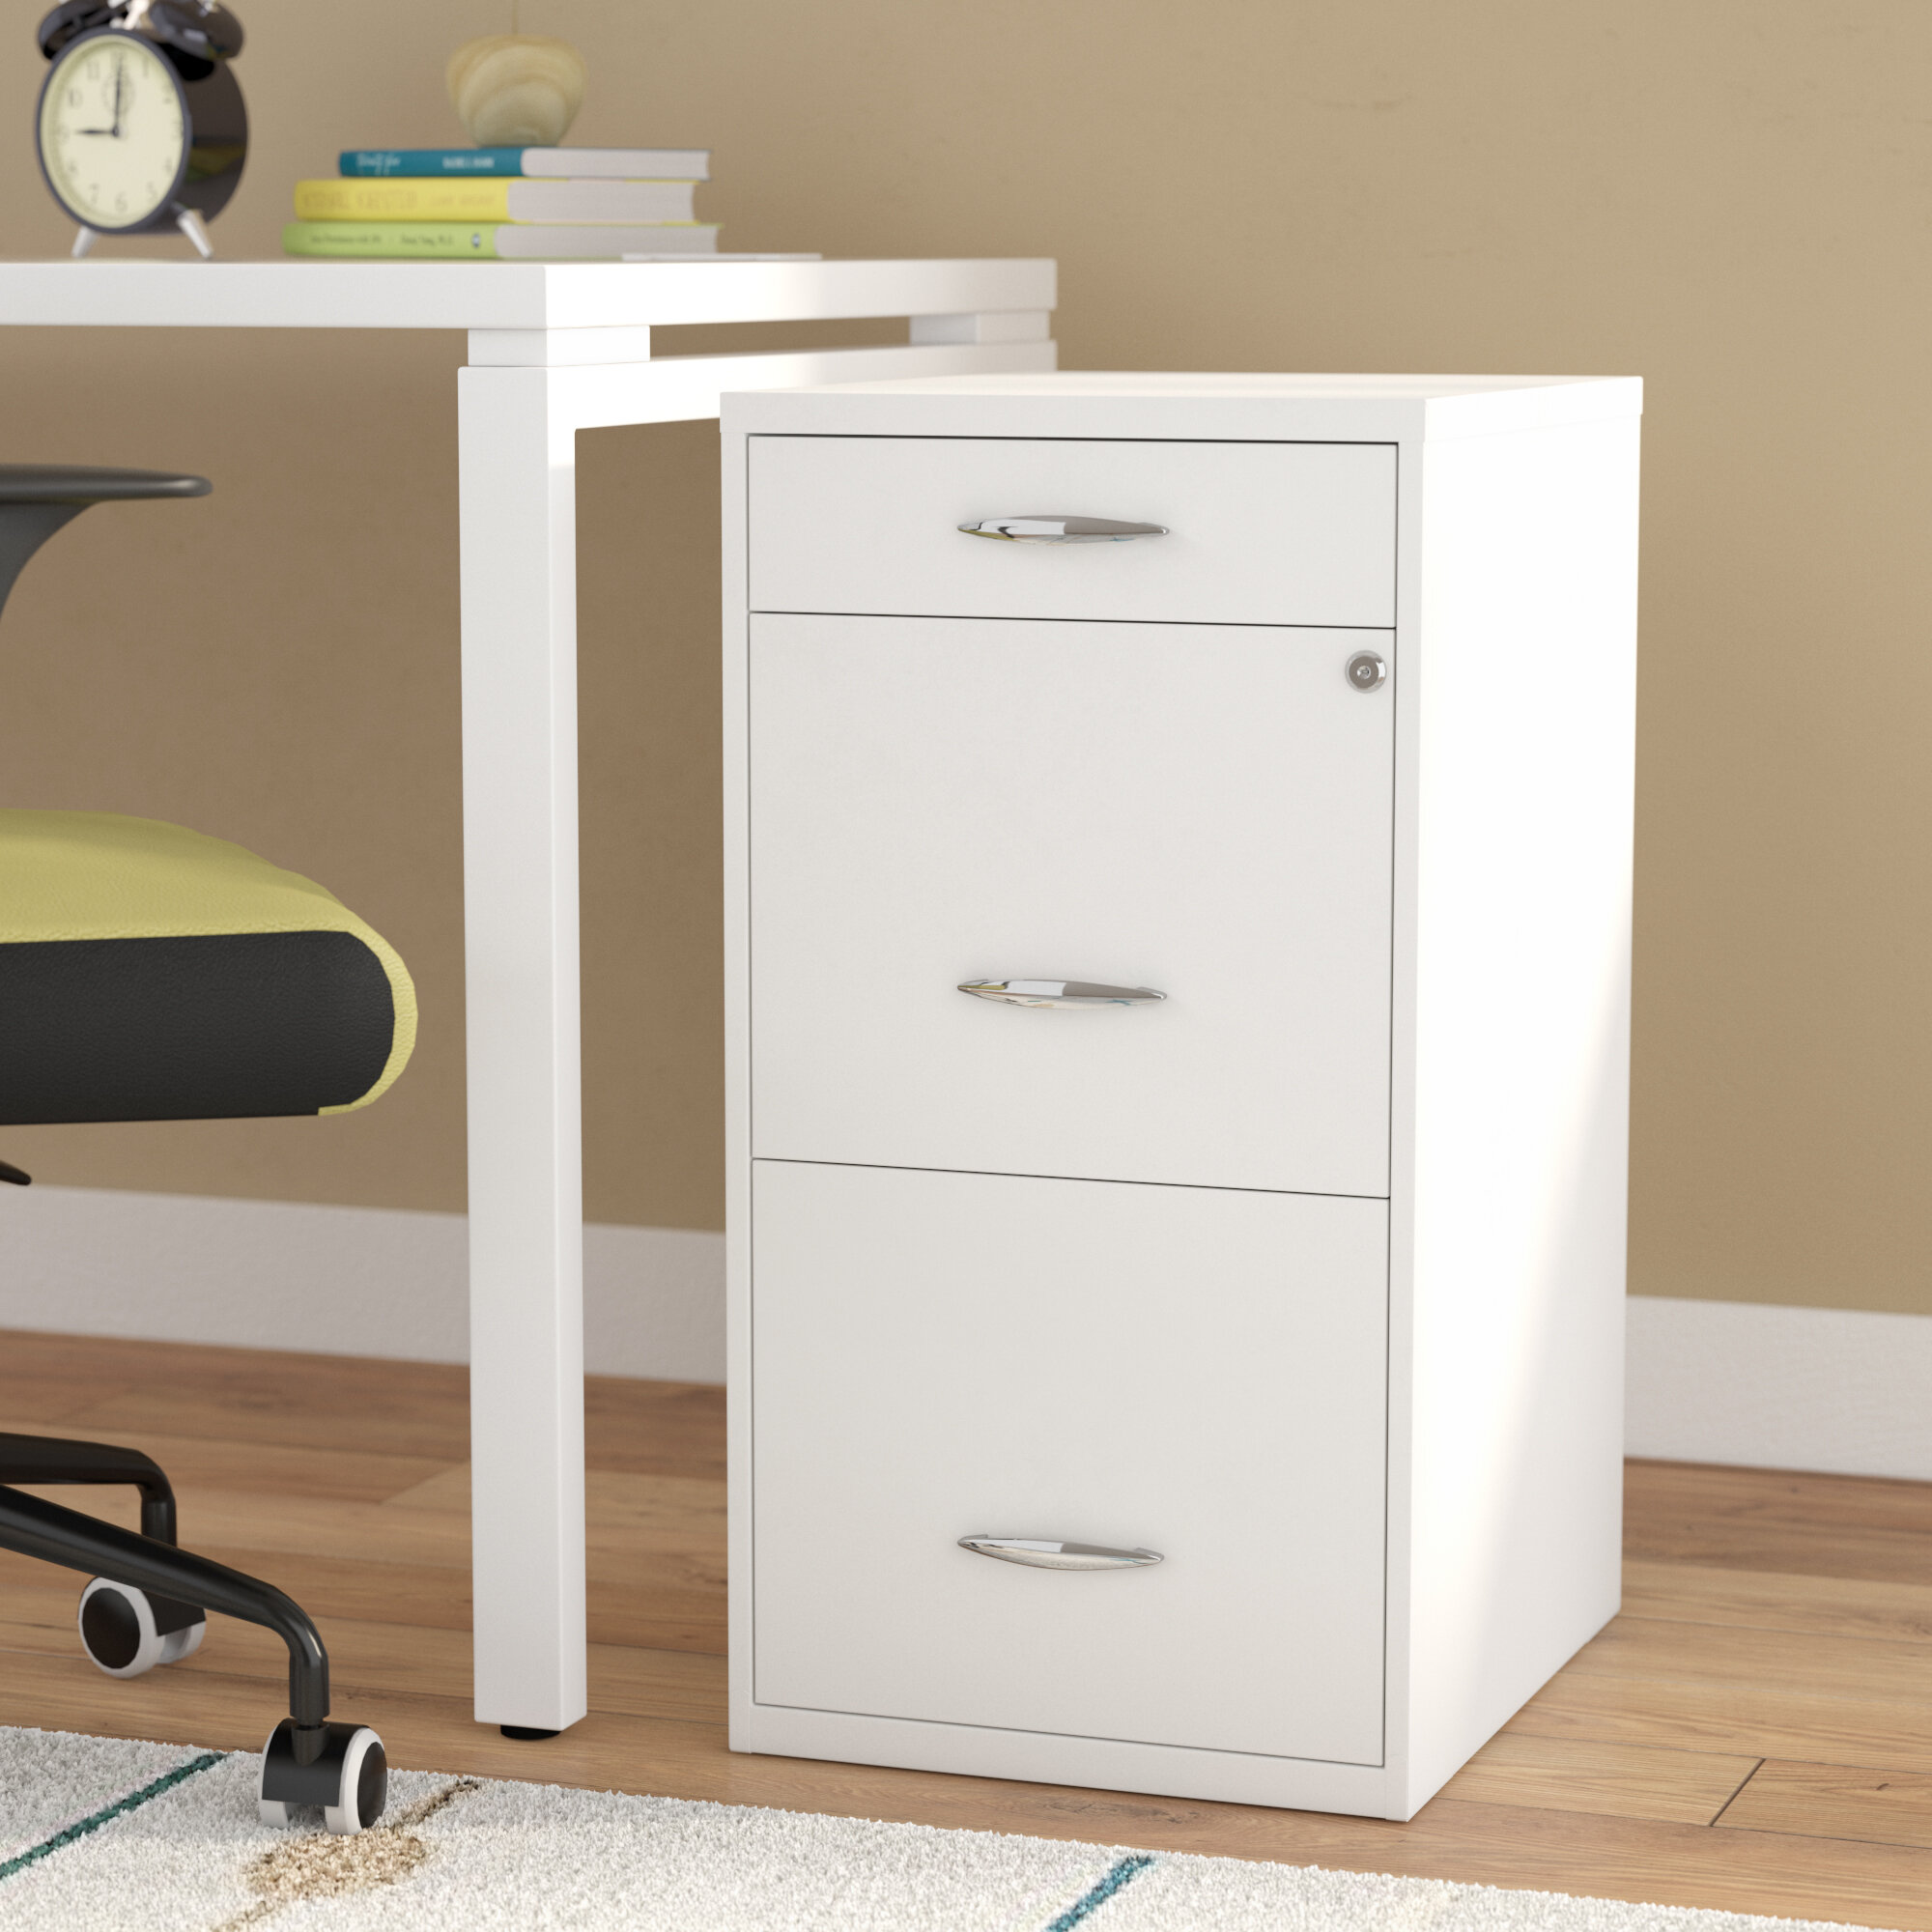 drawer d filing inc cabinets white letter size cabinet in collections vertical fireproof closed file ecommersify lvory